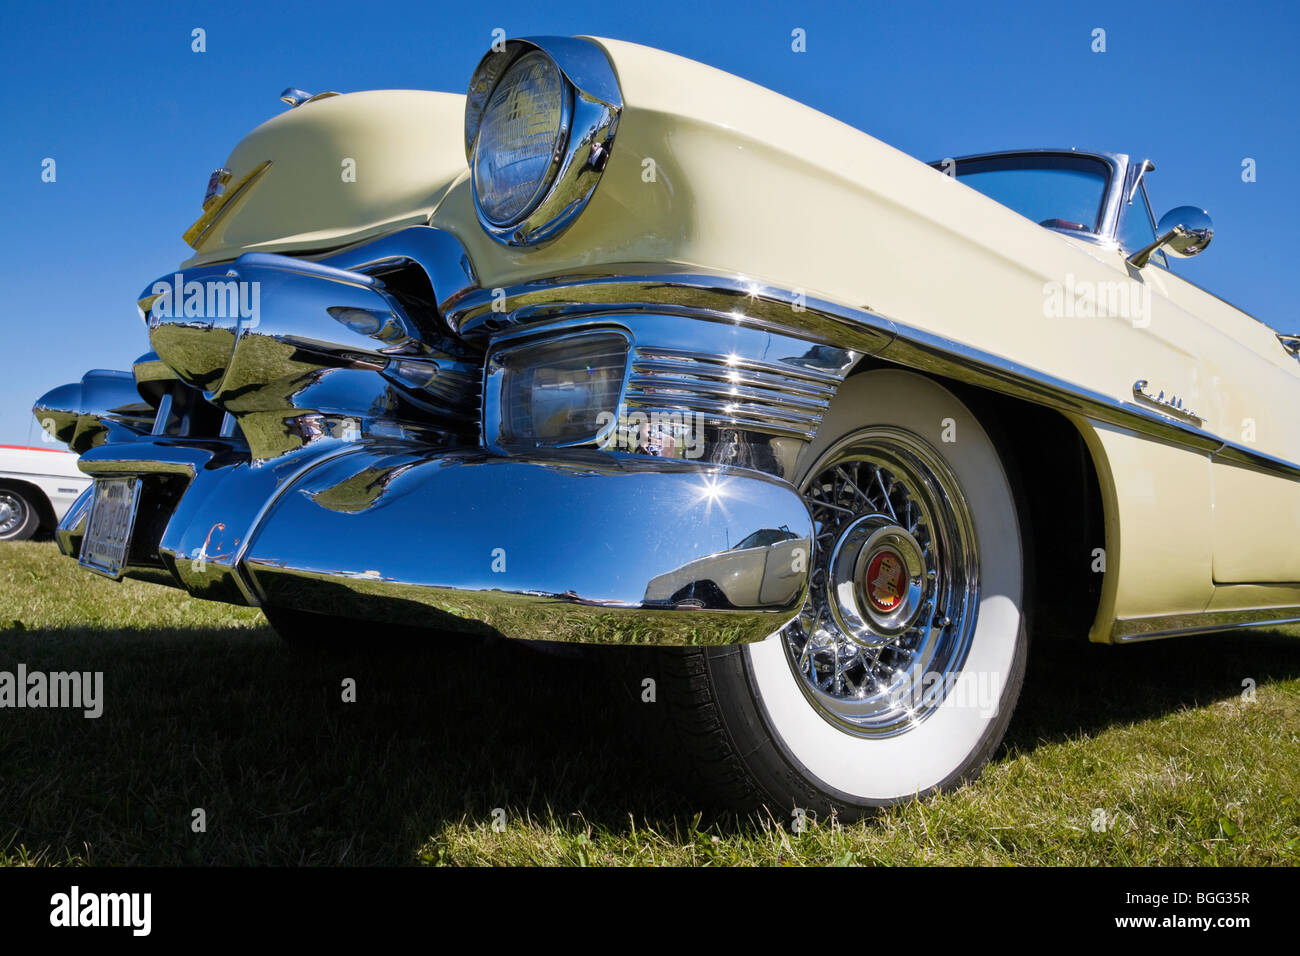 An old Cadillac from the 50s - Stock Image